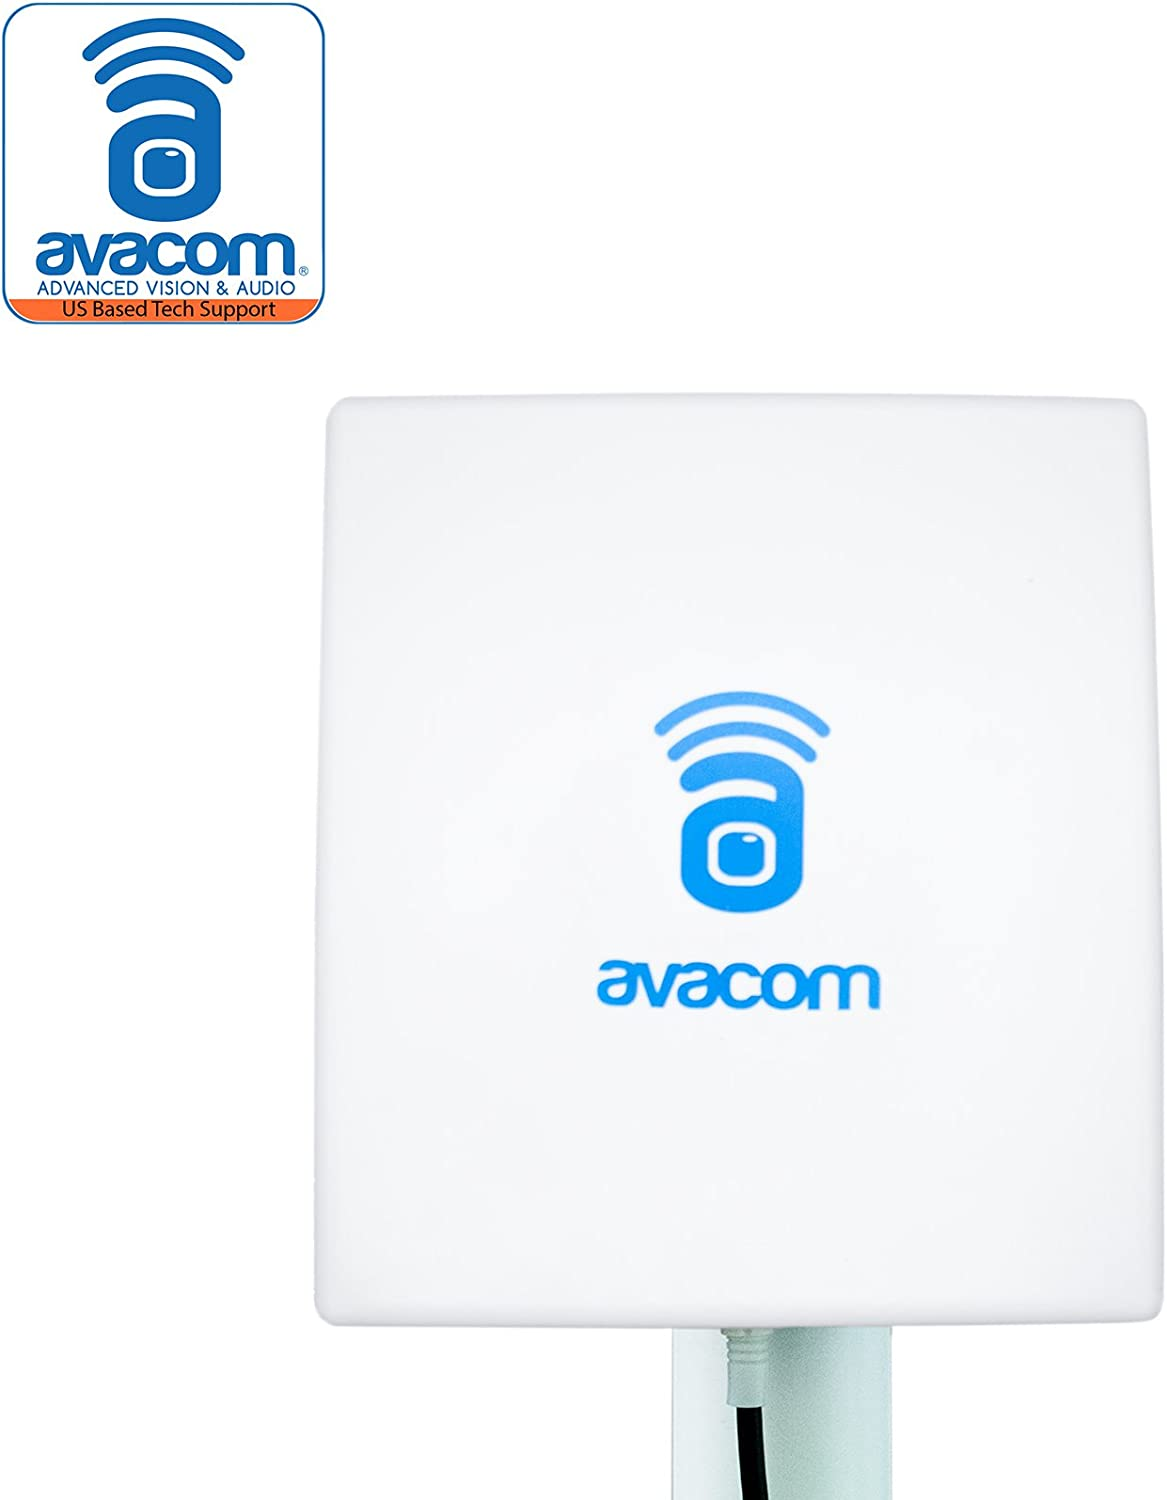 AVACOM Long Range WiFi Extender Panel Antenna for Wireless IP Camera and Router 2.4GHz 14dBi Directional Antenna 802.11b/g/n, RP-SMA Male Connector with Adapter